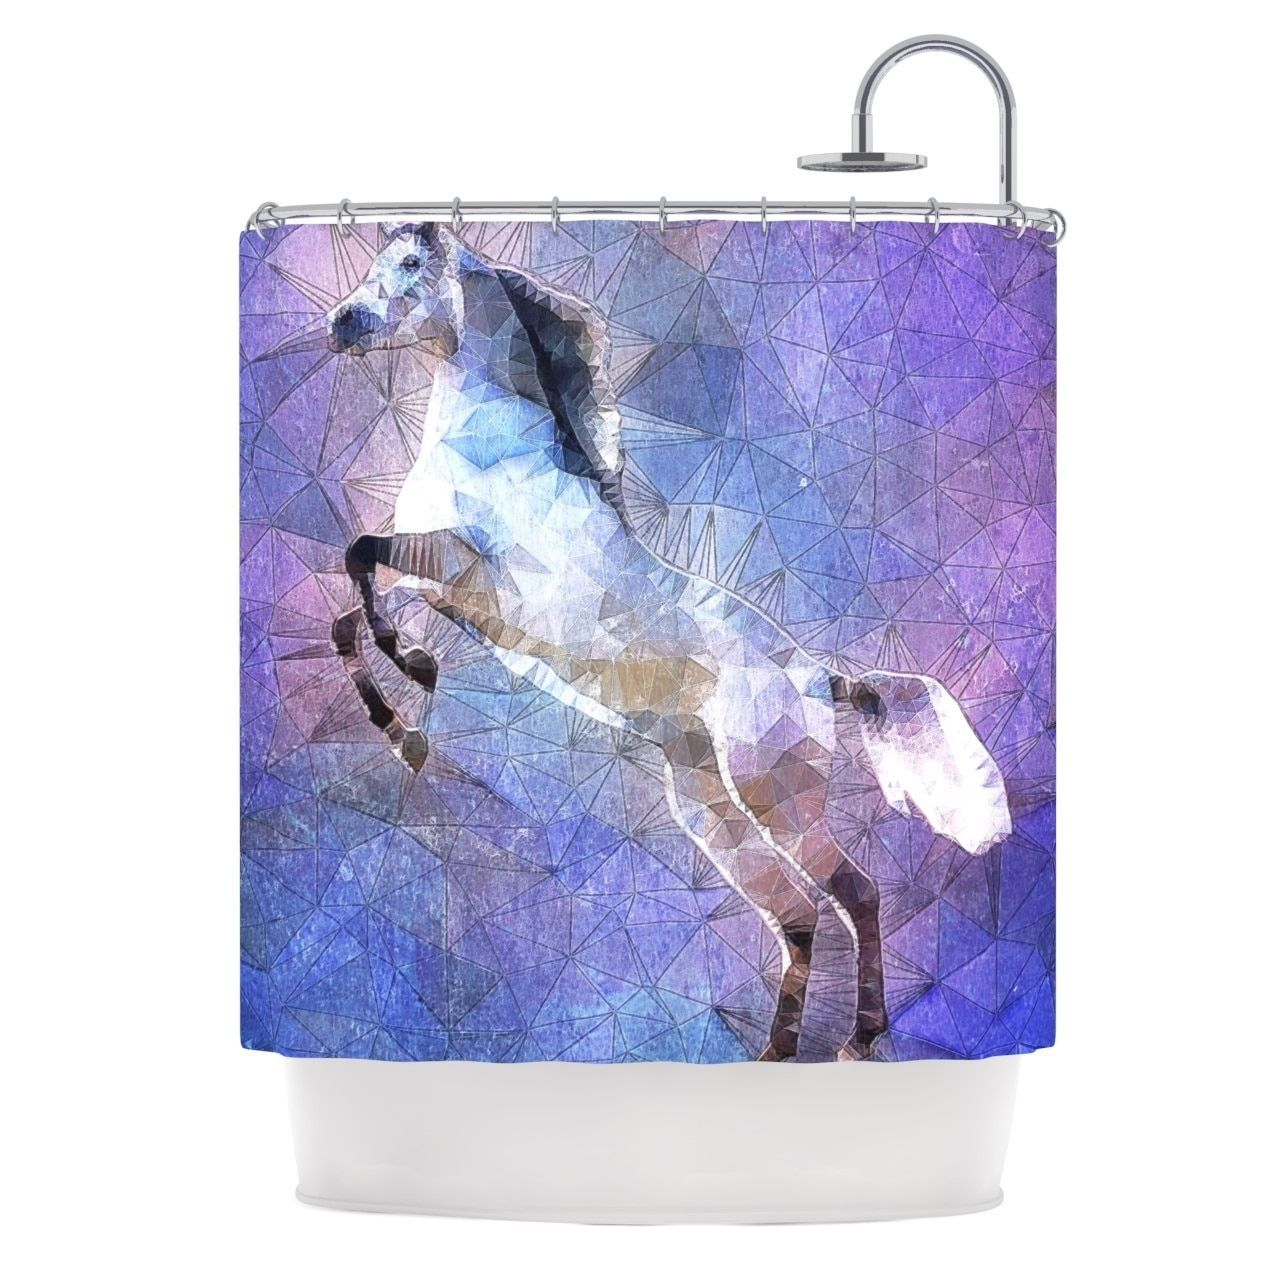 Artistic Shower Curtains. Irresistible Artistic Shower Curtains ...